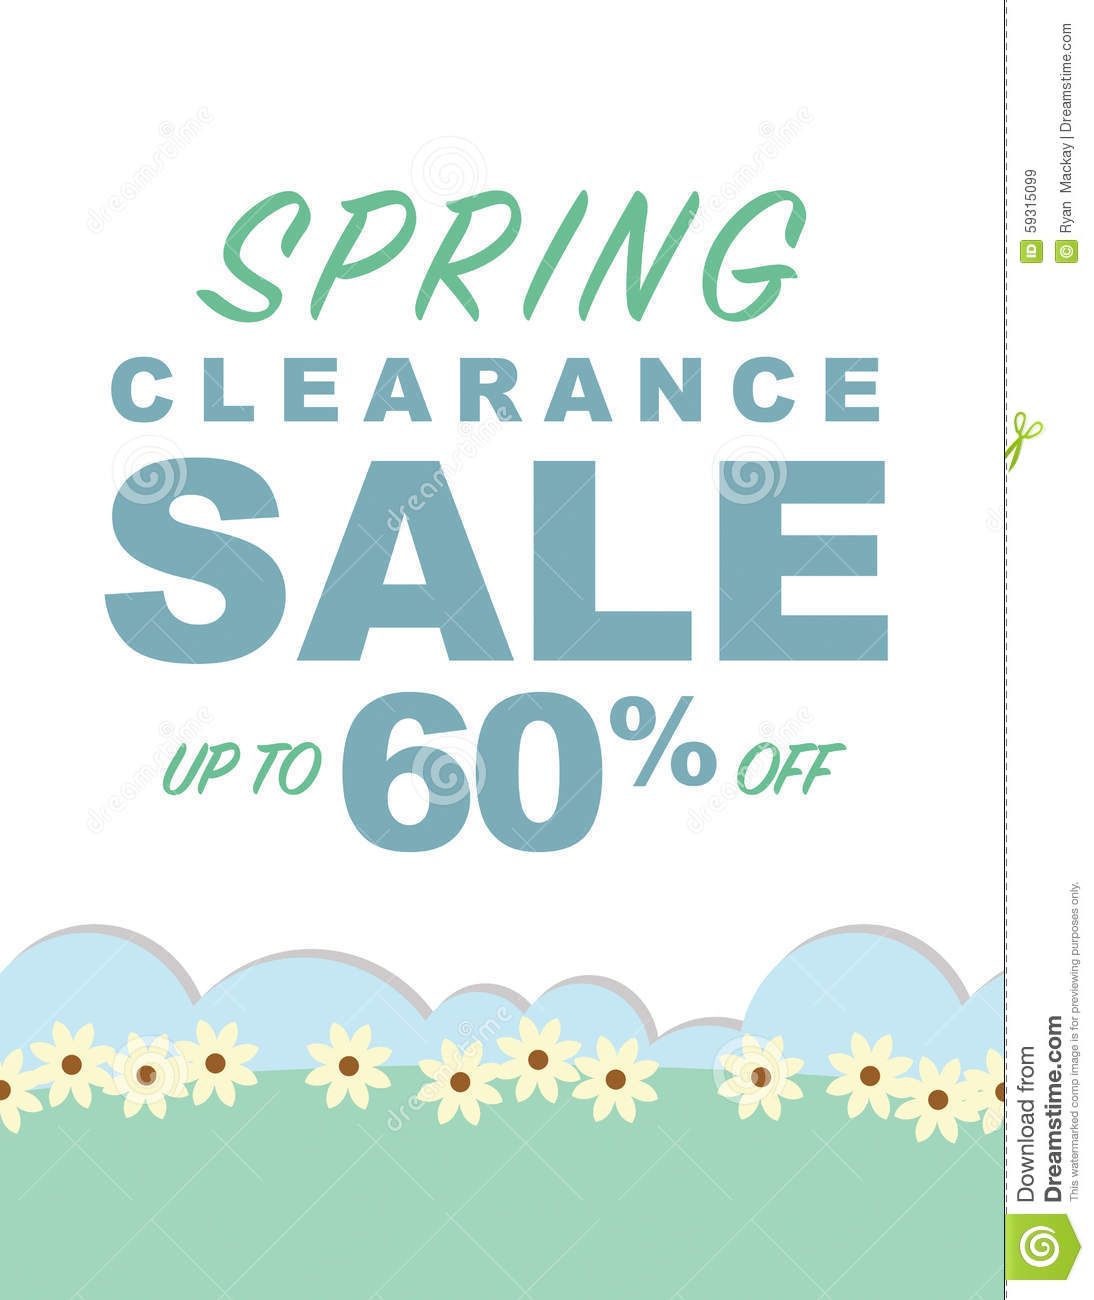 Spring Sale: Spring Clearance Sale Stock Vector